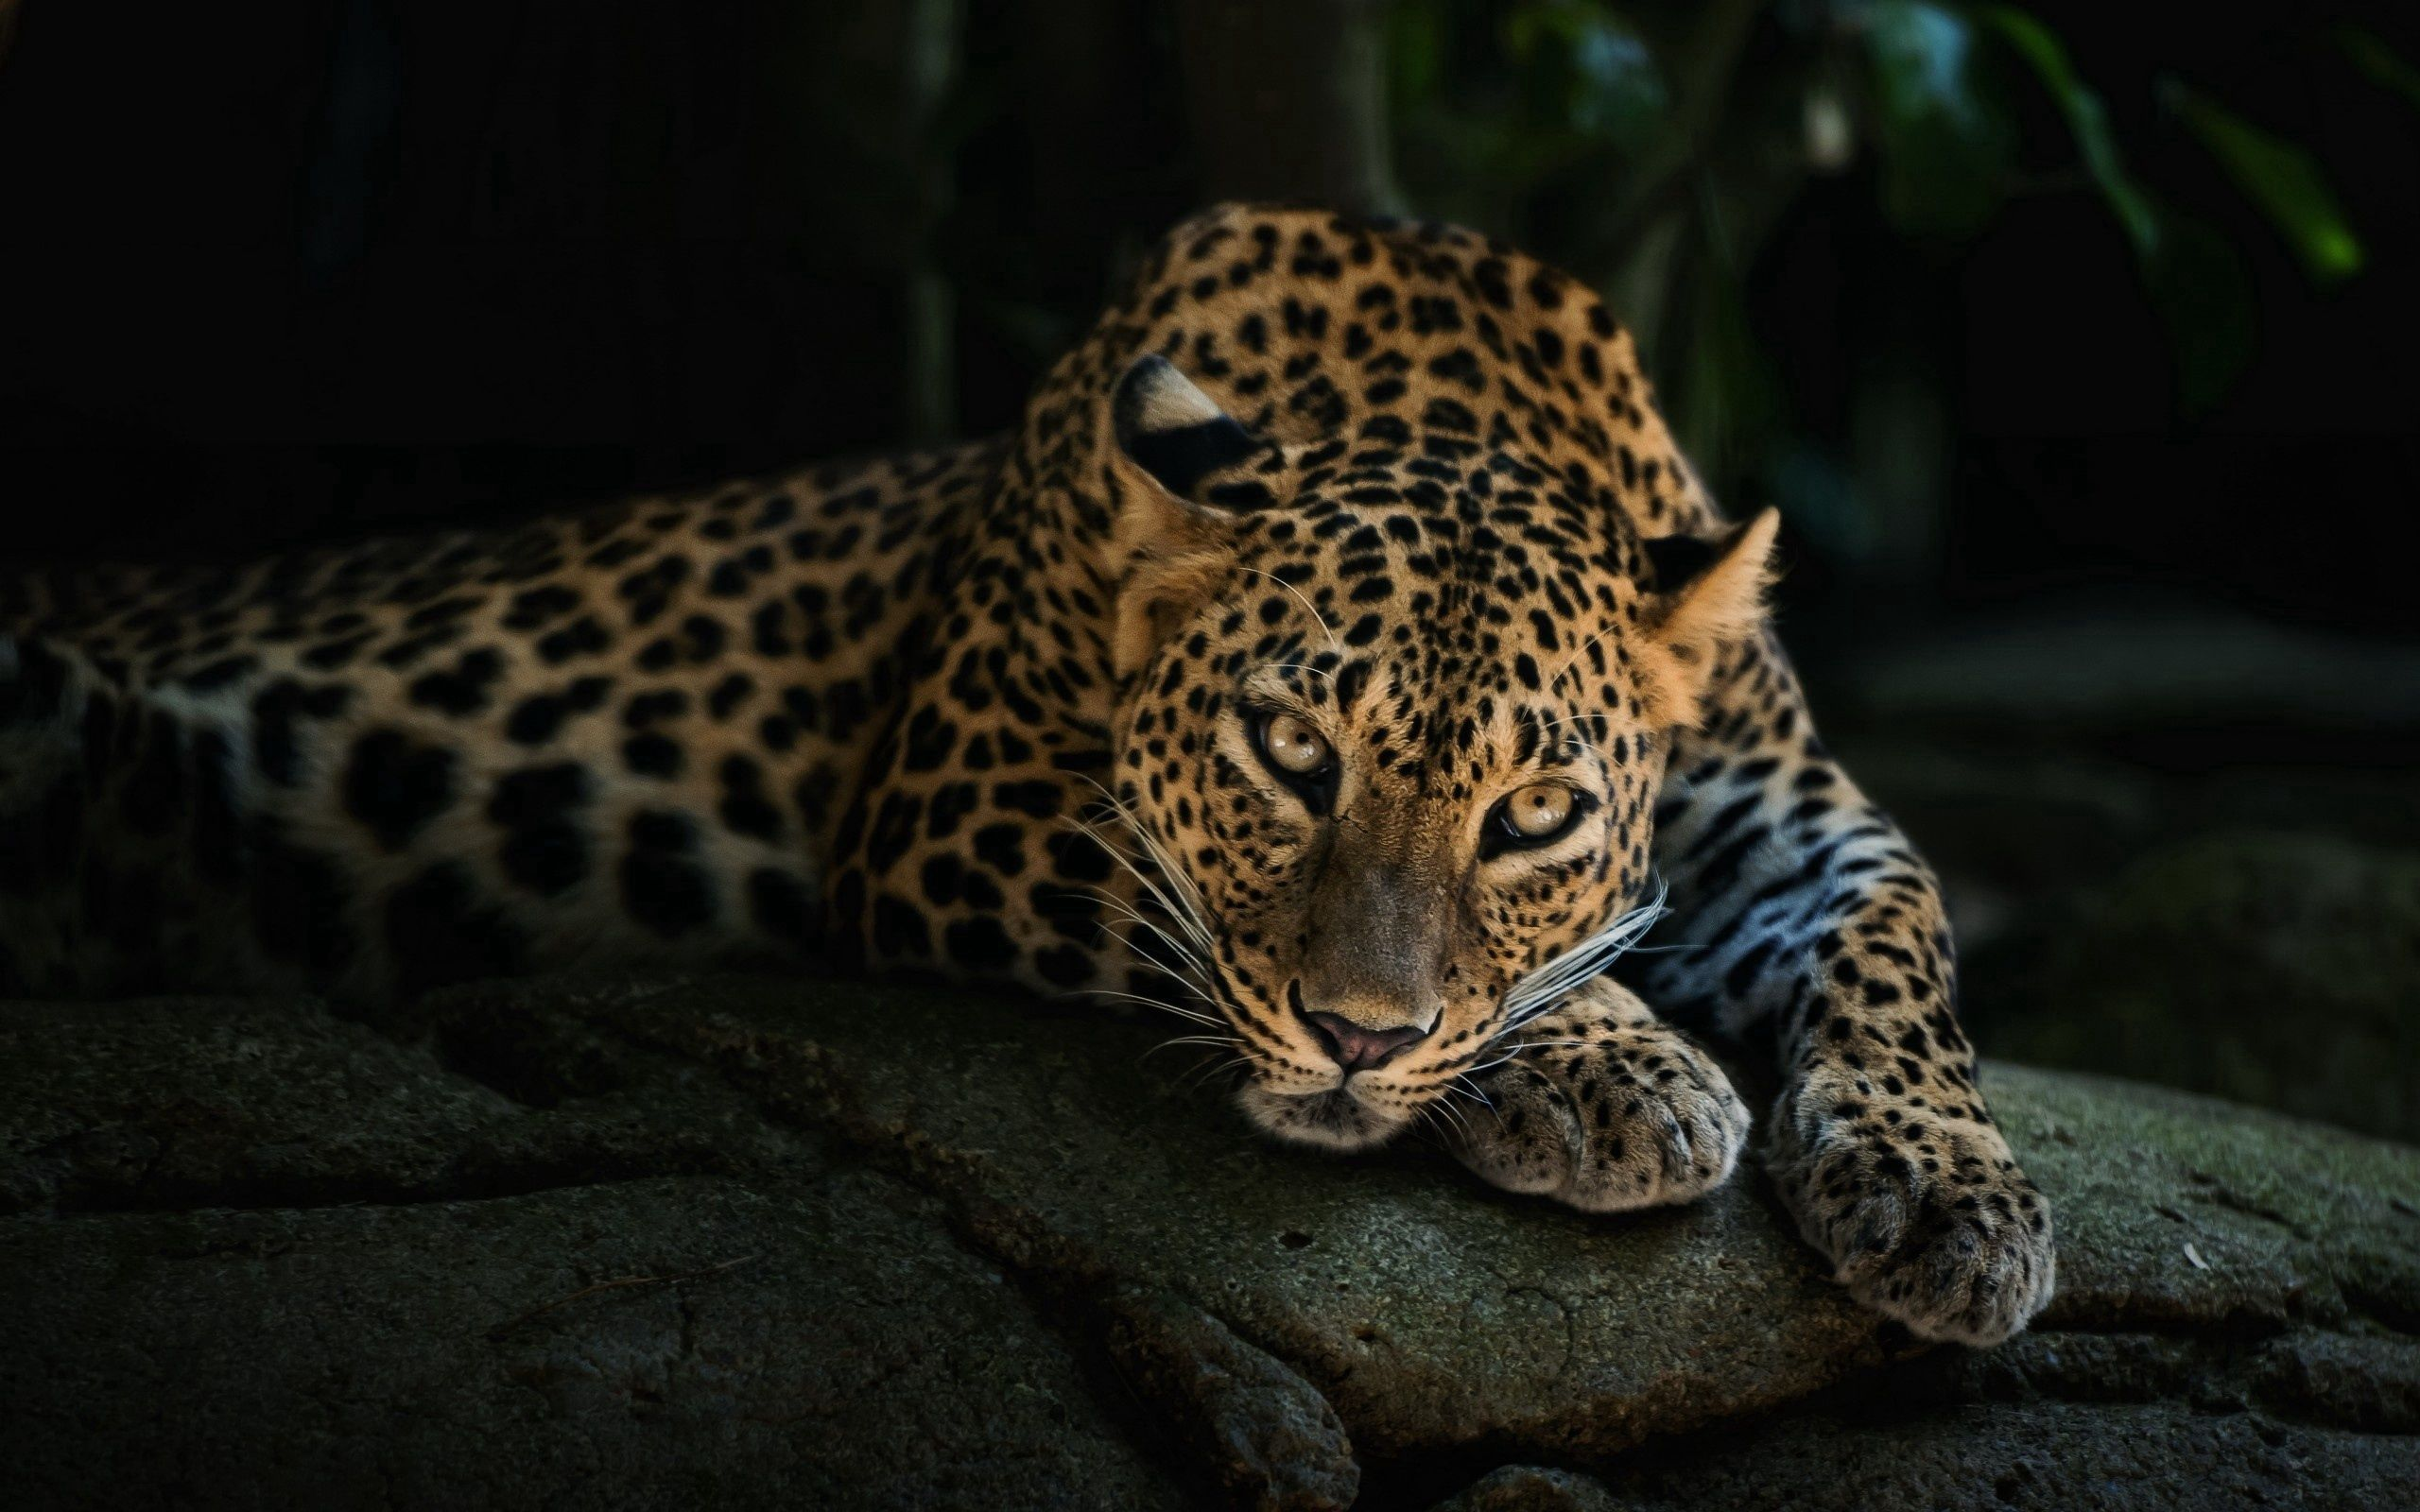 74677 download wallpaper Animals, Rock, Leopard, Predator, Relaxation, Rest, Stone, Sight, Opinion screensavers and pictures for free